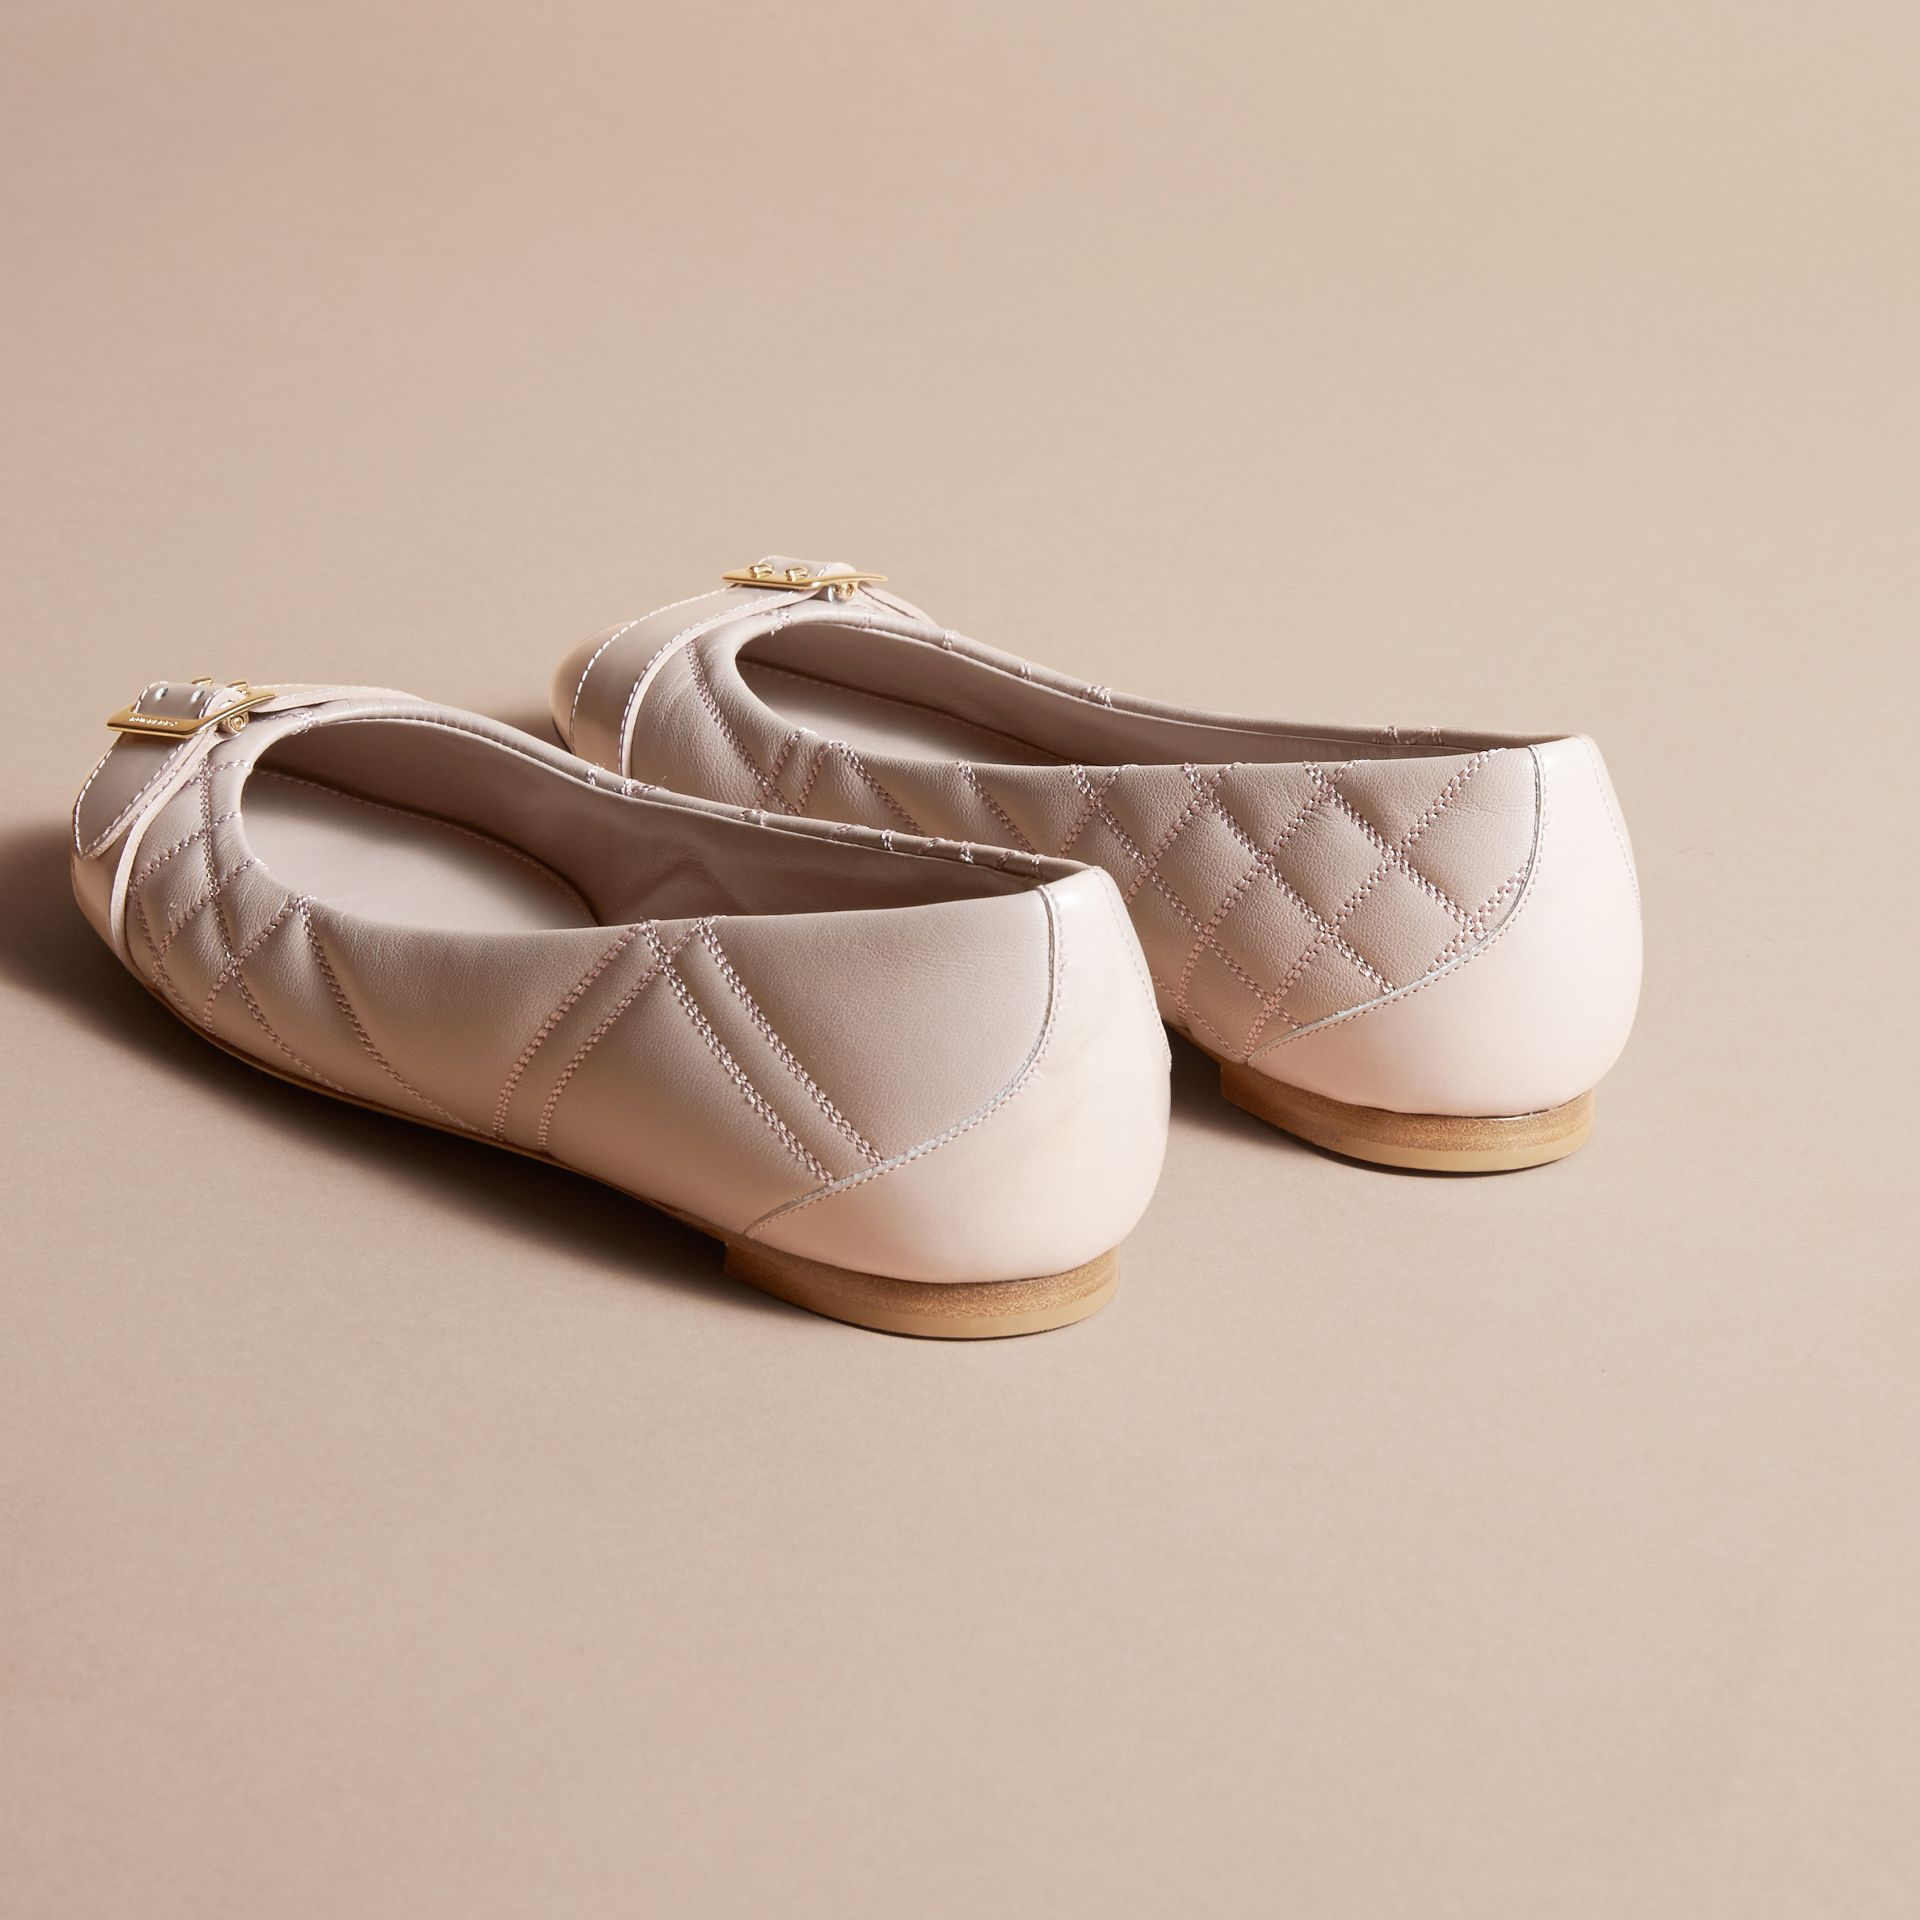 Buckle Detail Quilted Lambskin Leather Ballerinas in Ivory Pink - Women | Burberry - gallery image 4